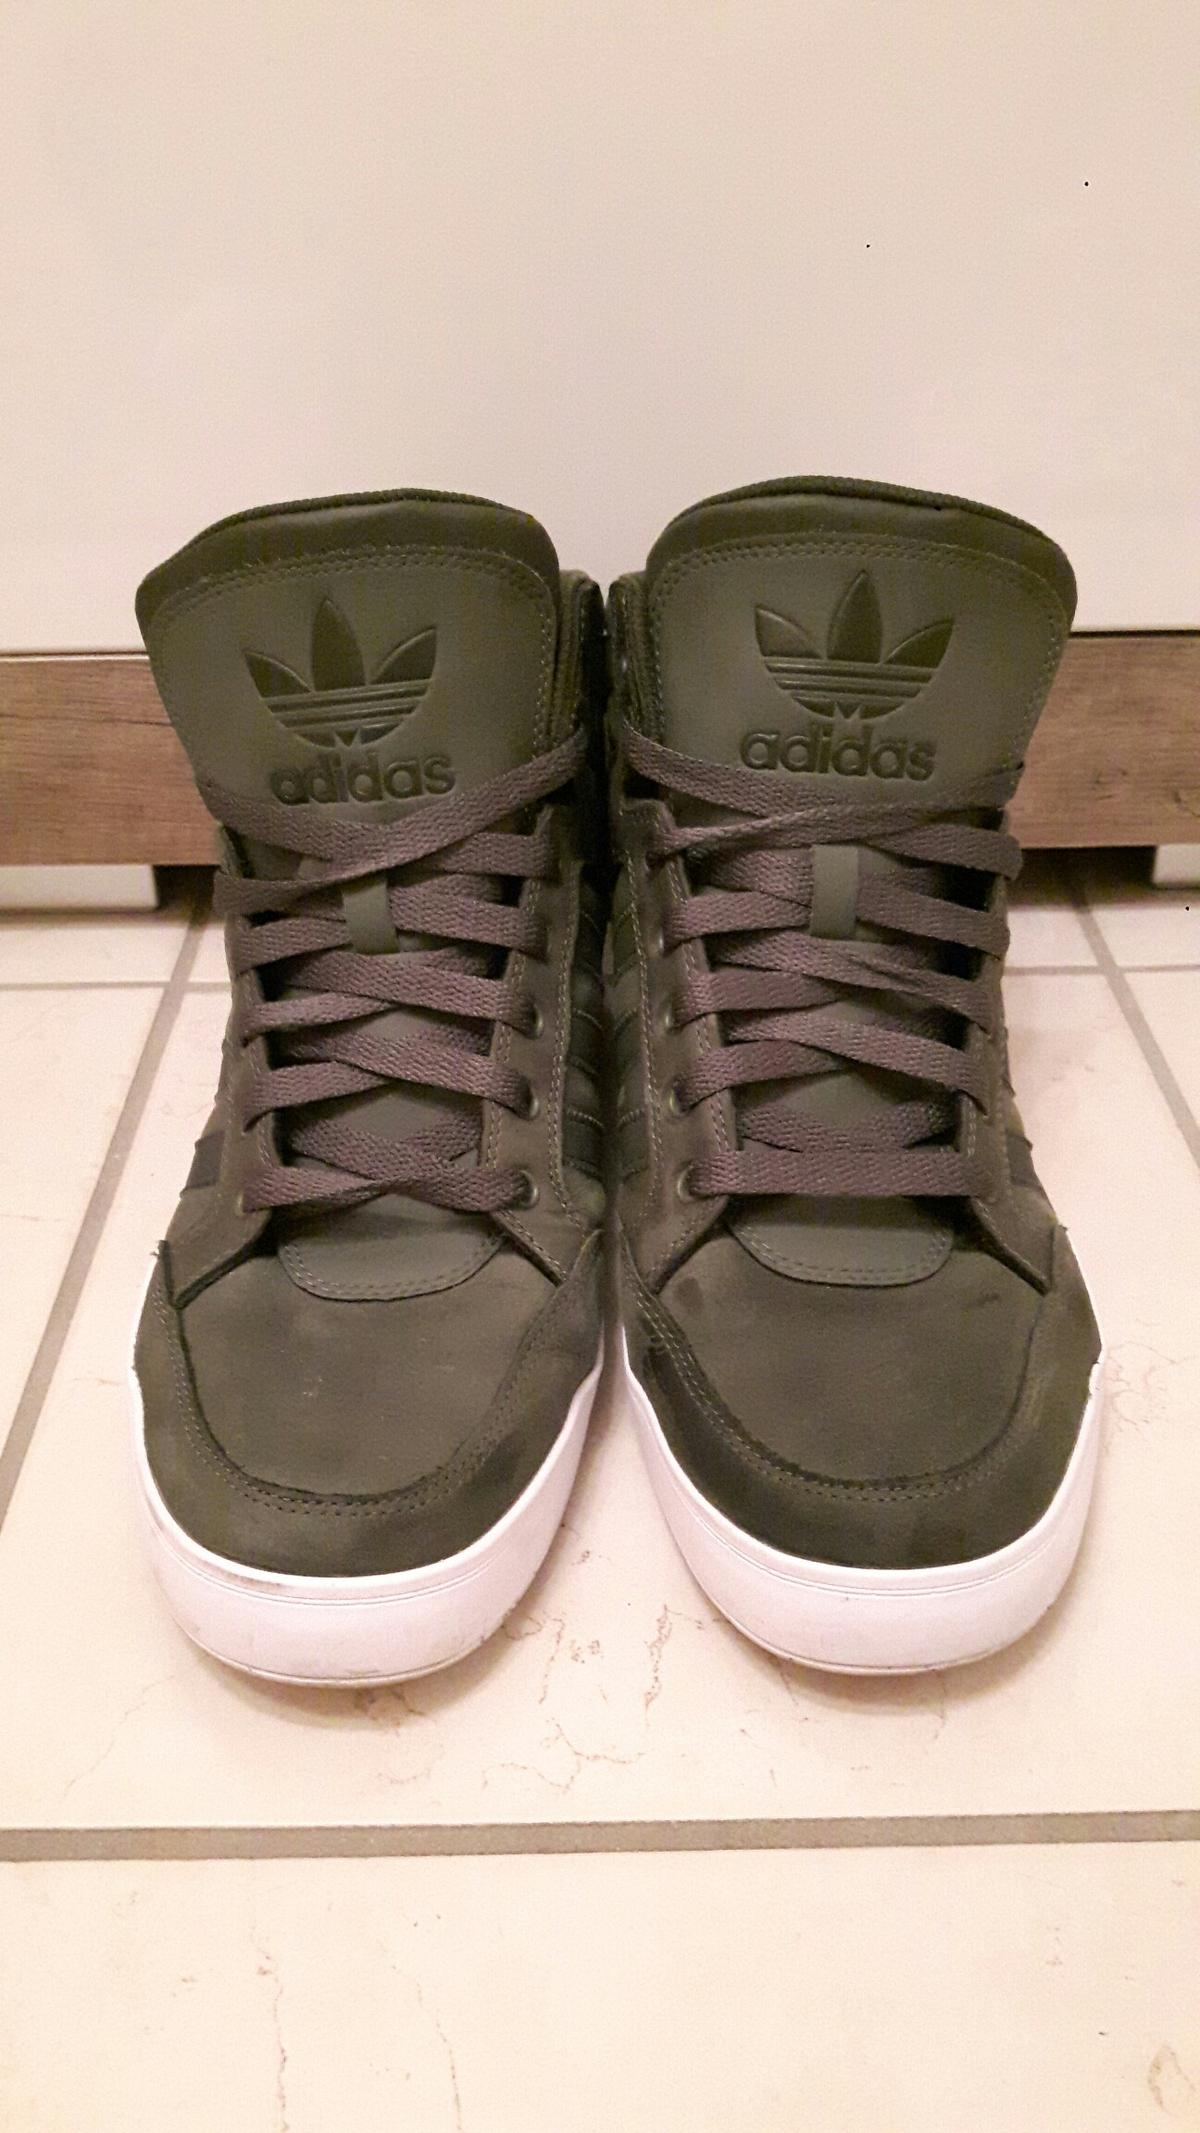 Adidas High Top Grün Gr.45 in 67346 Speyer for ?35.00 for